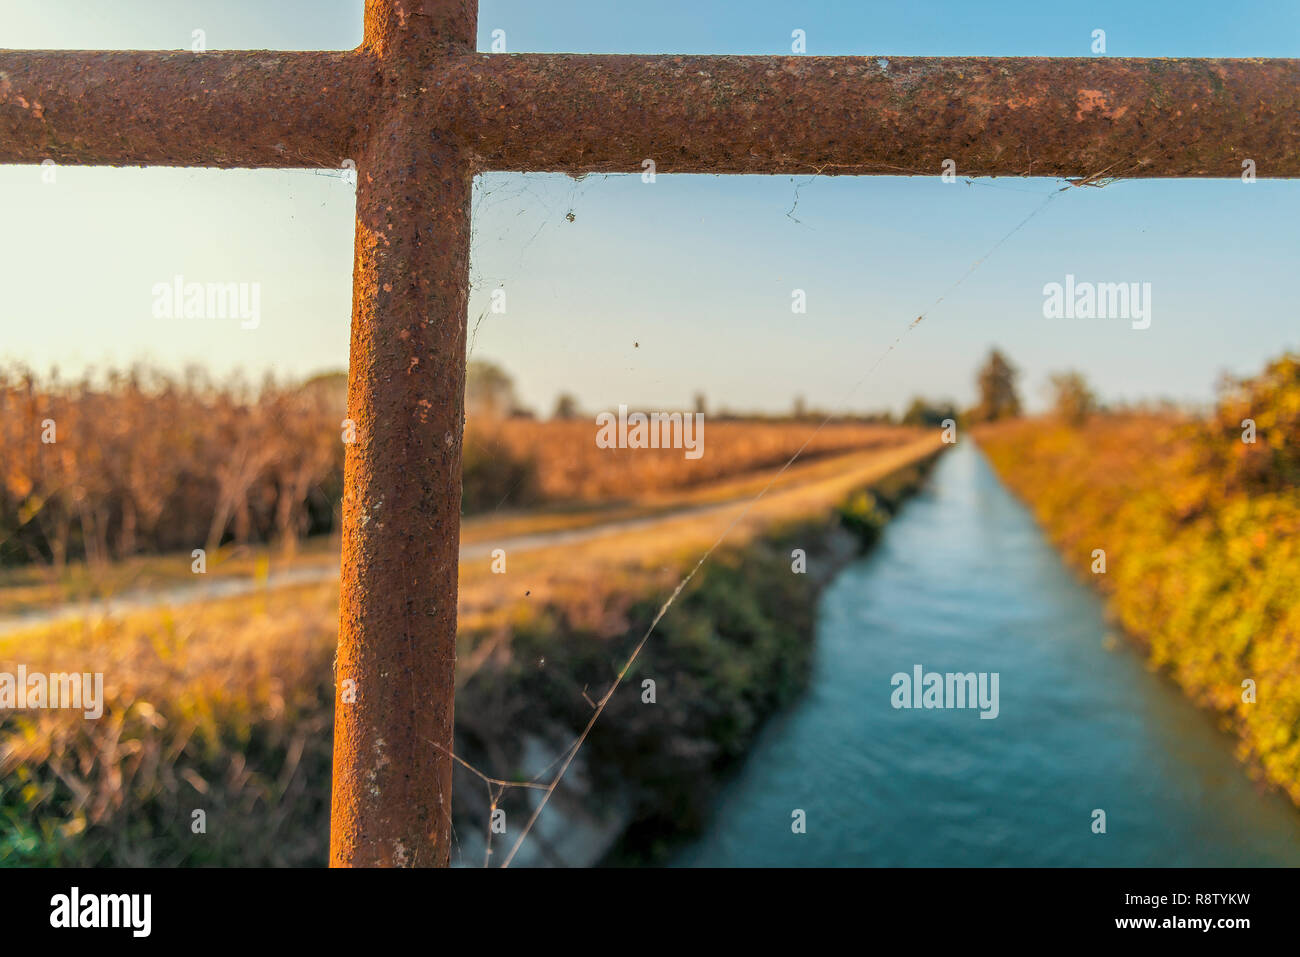 Bridge over an irrigation channel of the Lomellina at sunset - Stock Image